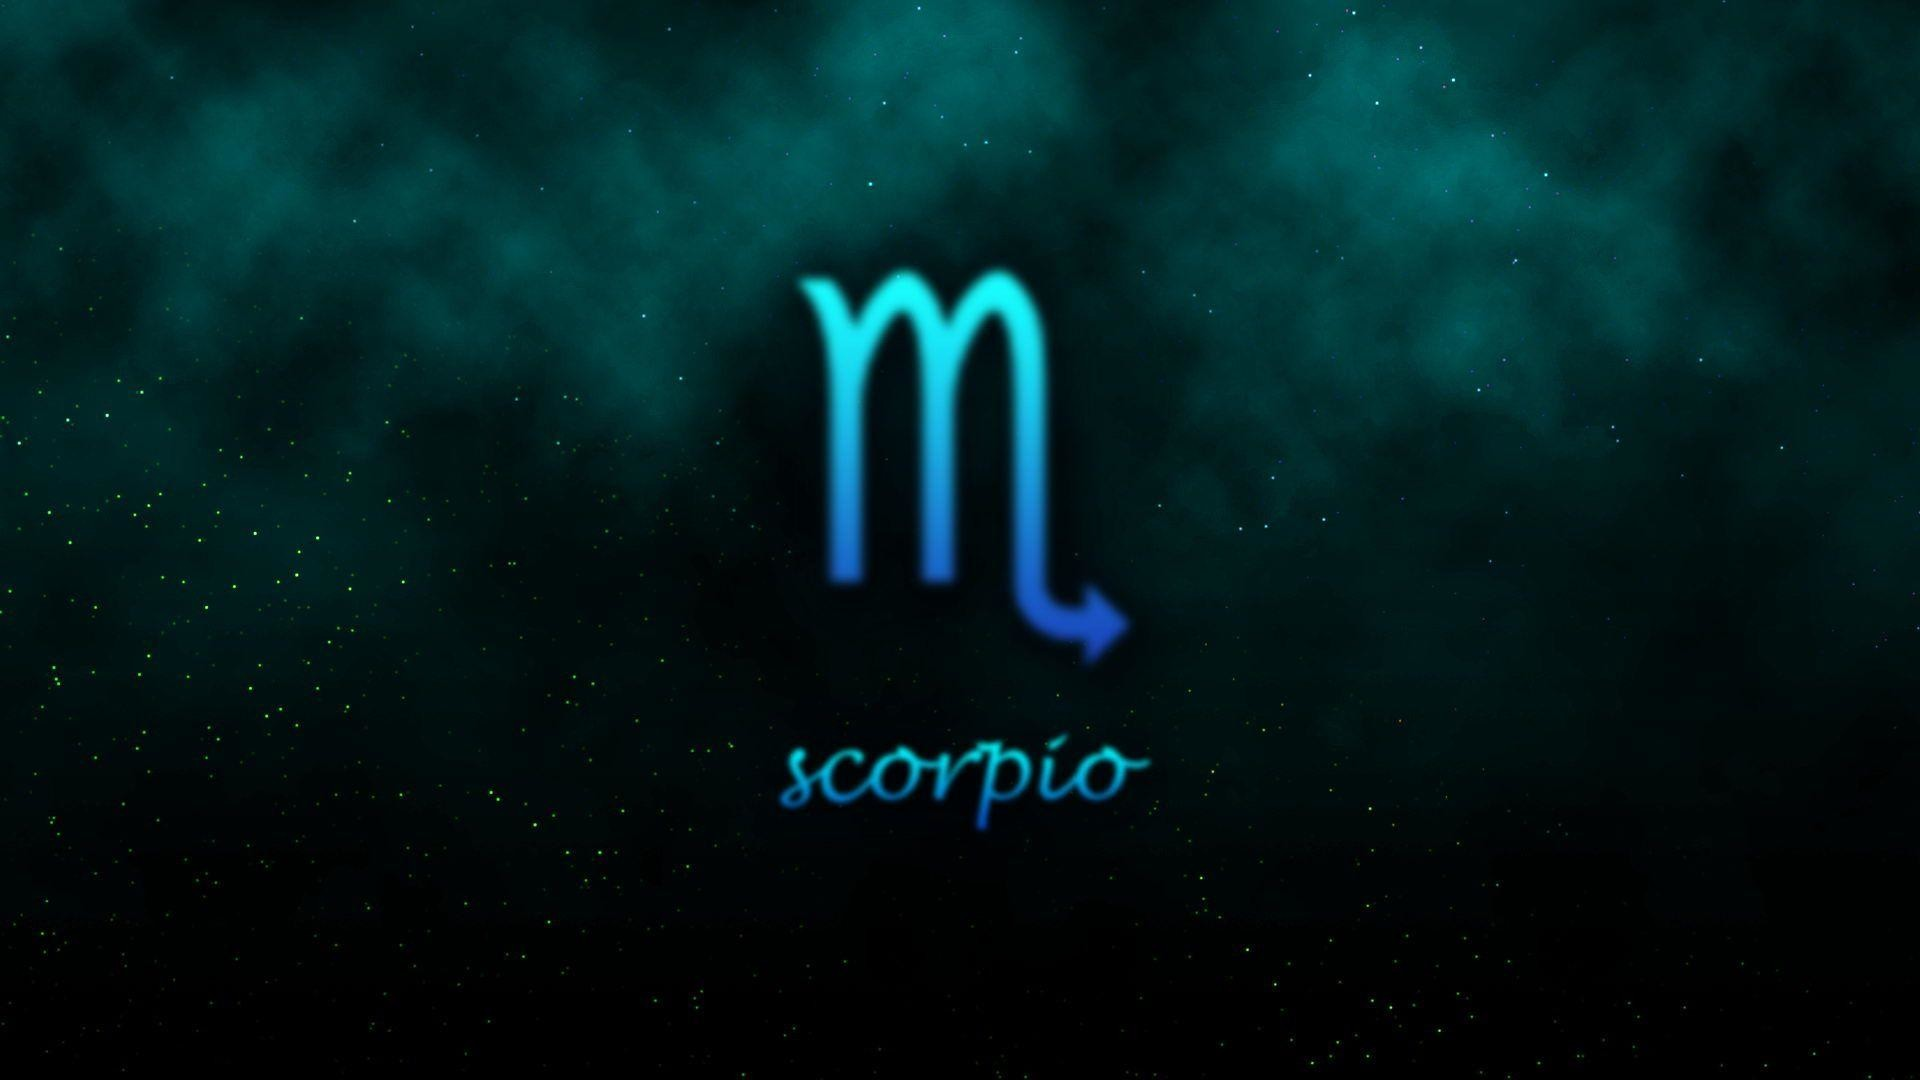 1920x1080 Scorpio HD Wallpaper